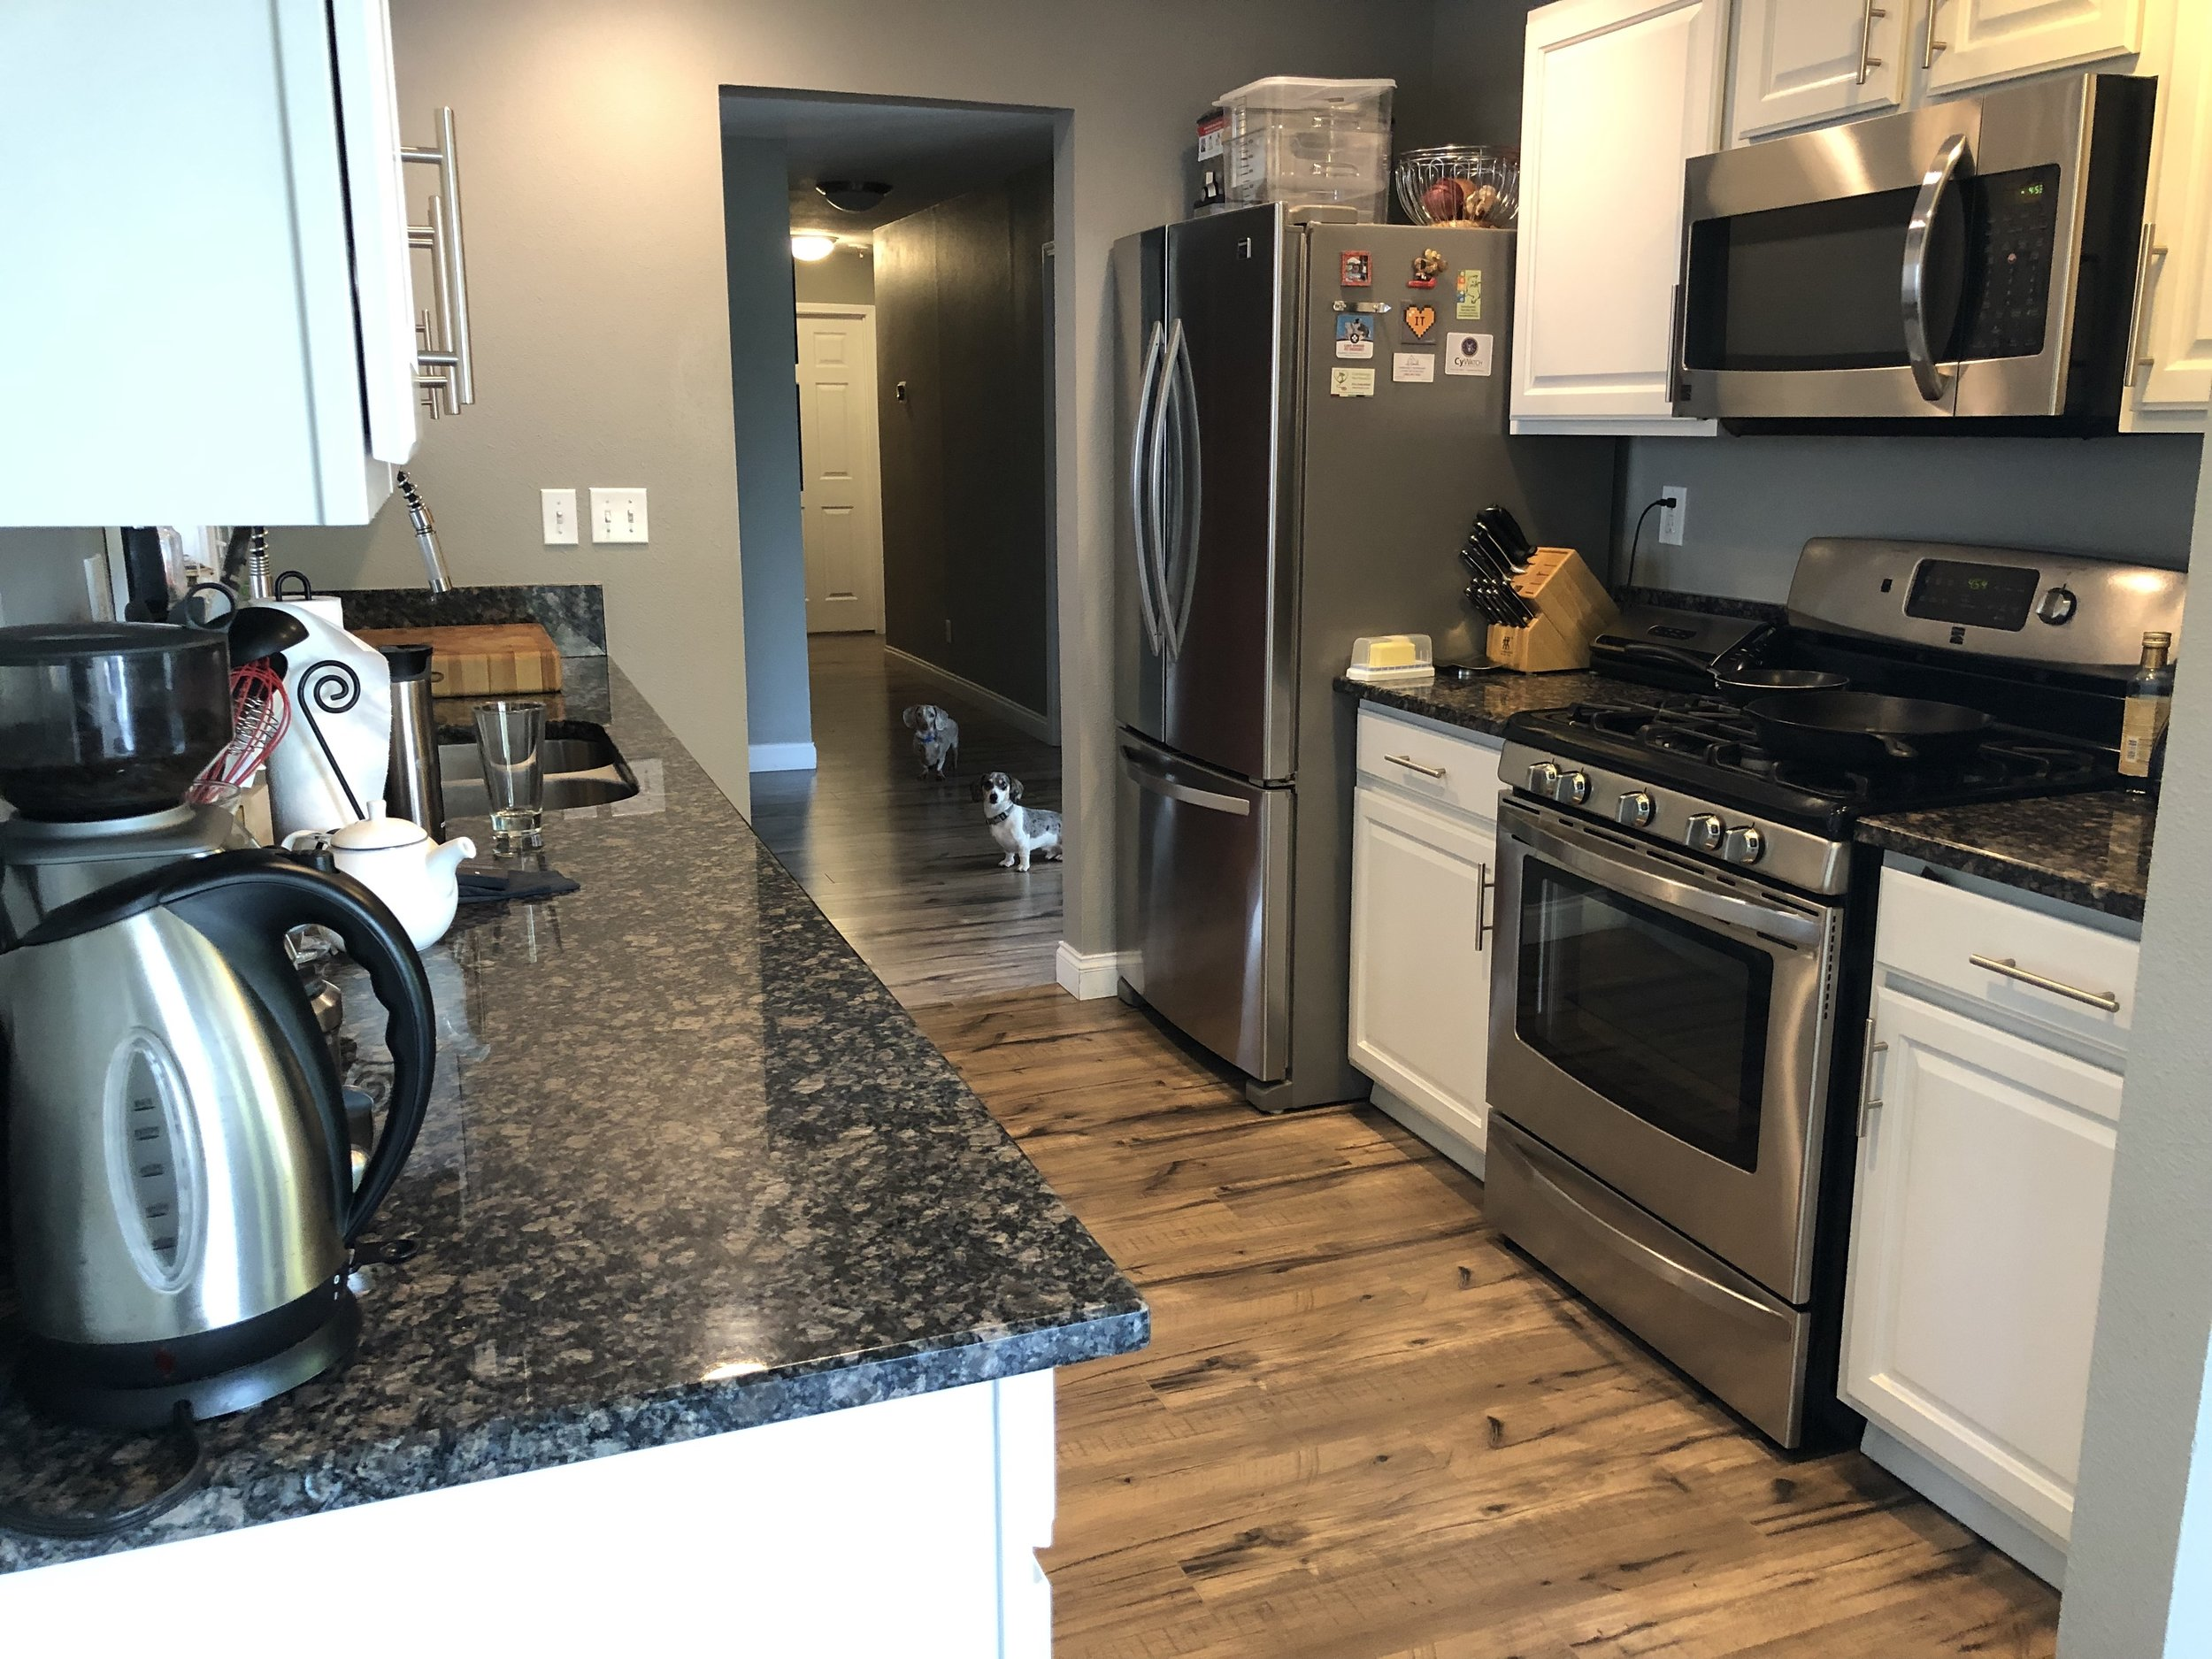 All good home photos have background dogs. This is my kitchen; I just took a quick photo today. Please ignore the cluttered countertops.